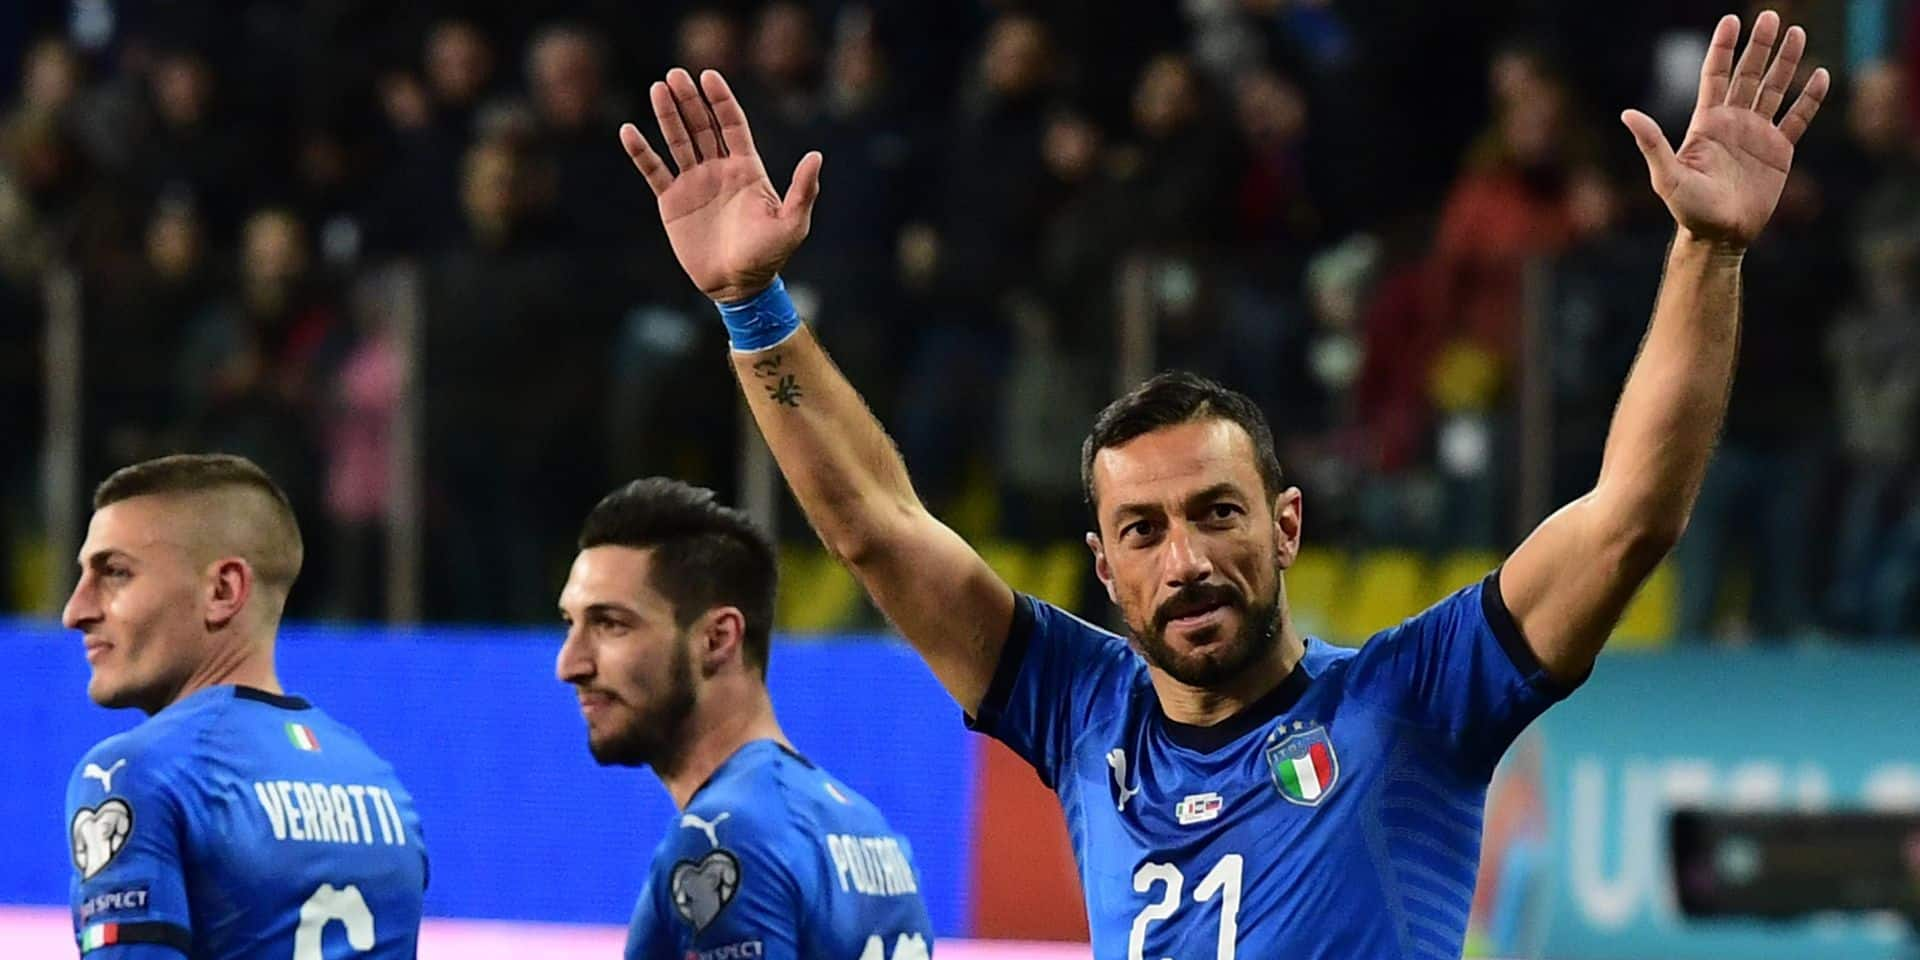 Italy's forward Fabio Quagliarella (R) celebrates after scoring a penalty during the Euro 2020 Group J qualifying football match Italy vs Liechtenstein on March 26, 2019 at the Ennio-Tardini stadium in Parma. (Photo by Miguel MEDINA / AFP)